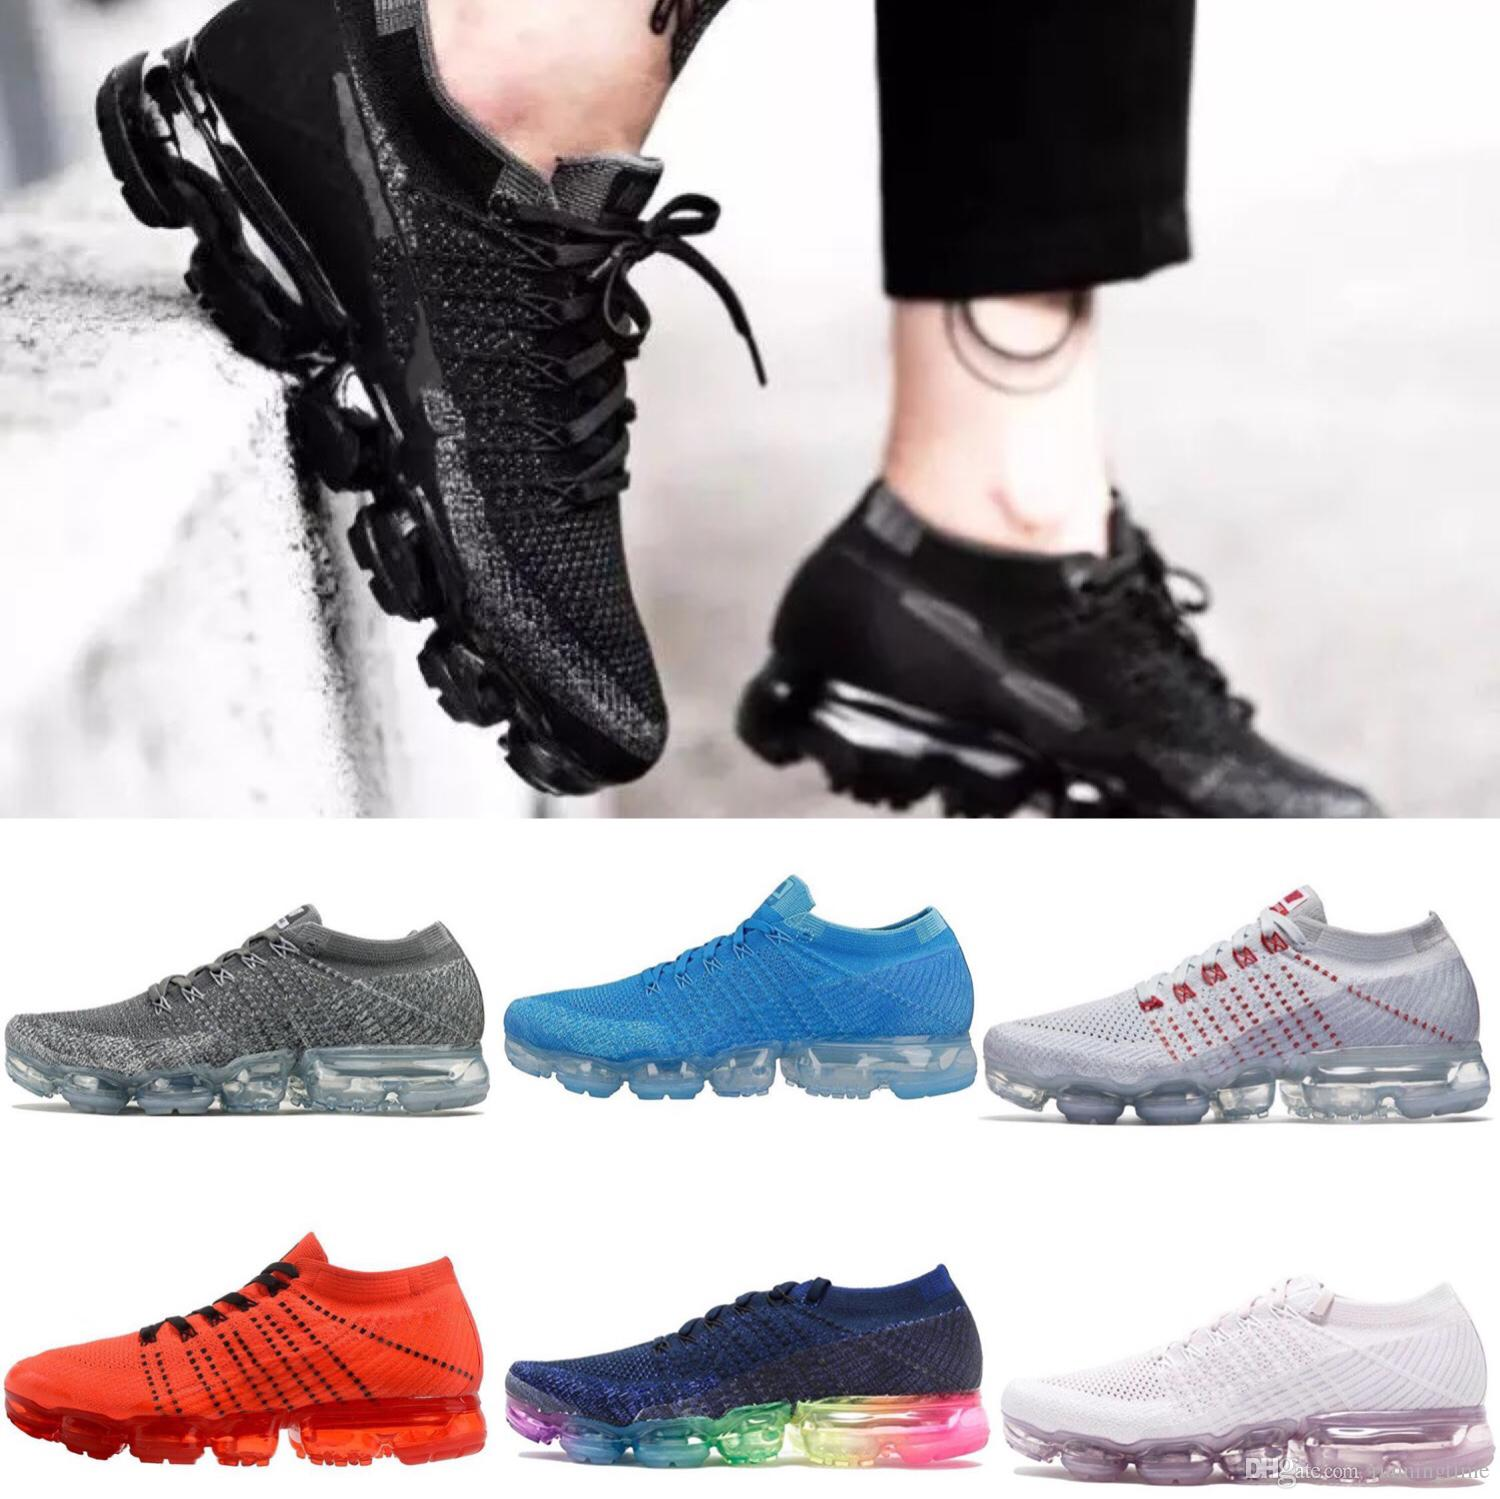 07cff1b11 Limited Sale 2018 Men Women running shoes Athletic Sports Sneaker Cross  Hiking Jogging Walking Outdoor Qulity Shoes